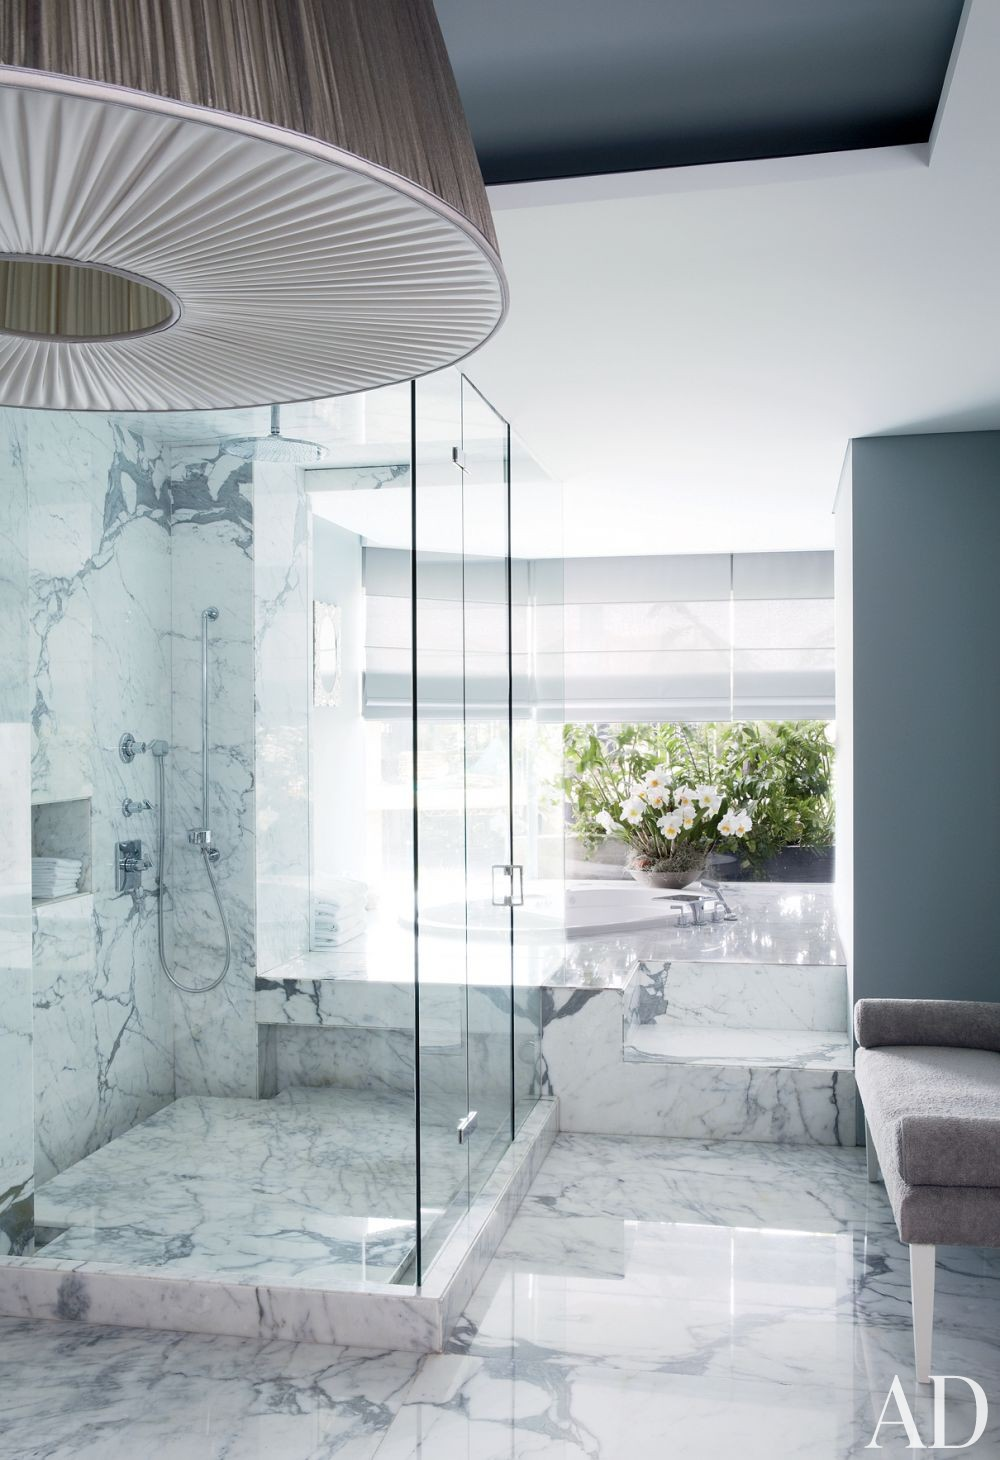 Contemporary Bathroom by Jean-Louis Deniot and Jean-Louis Deniot in Colombia